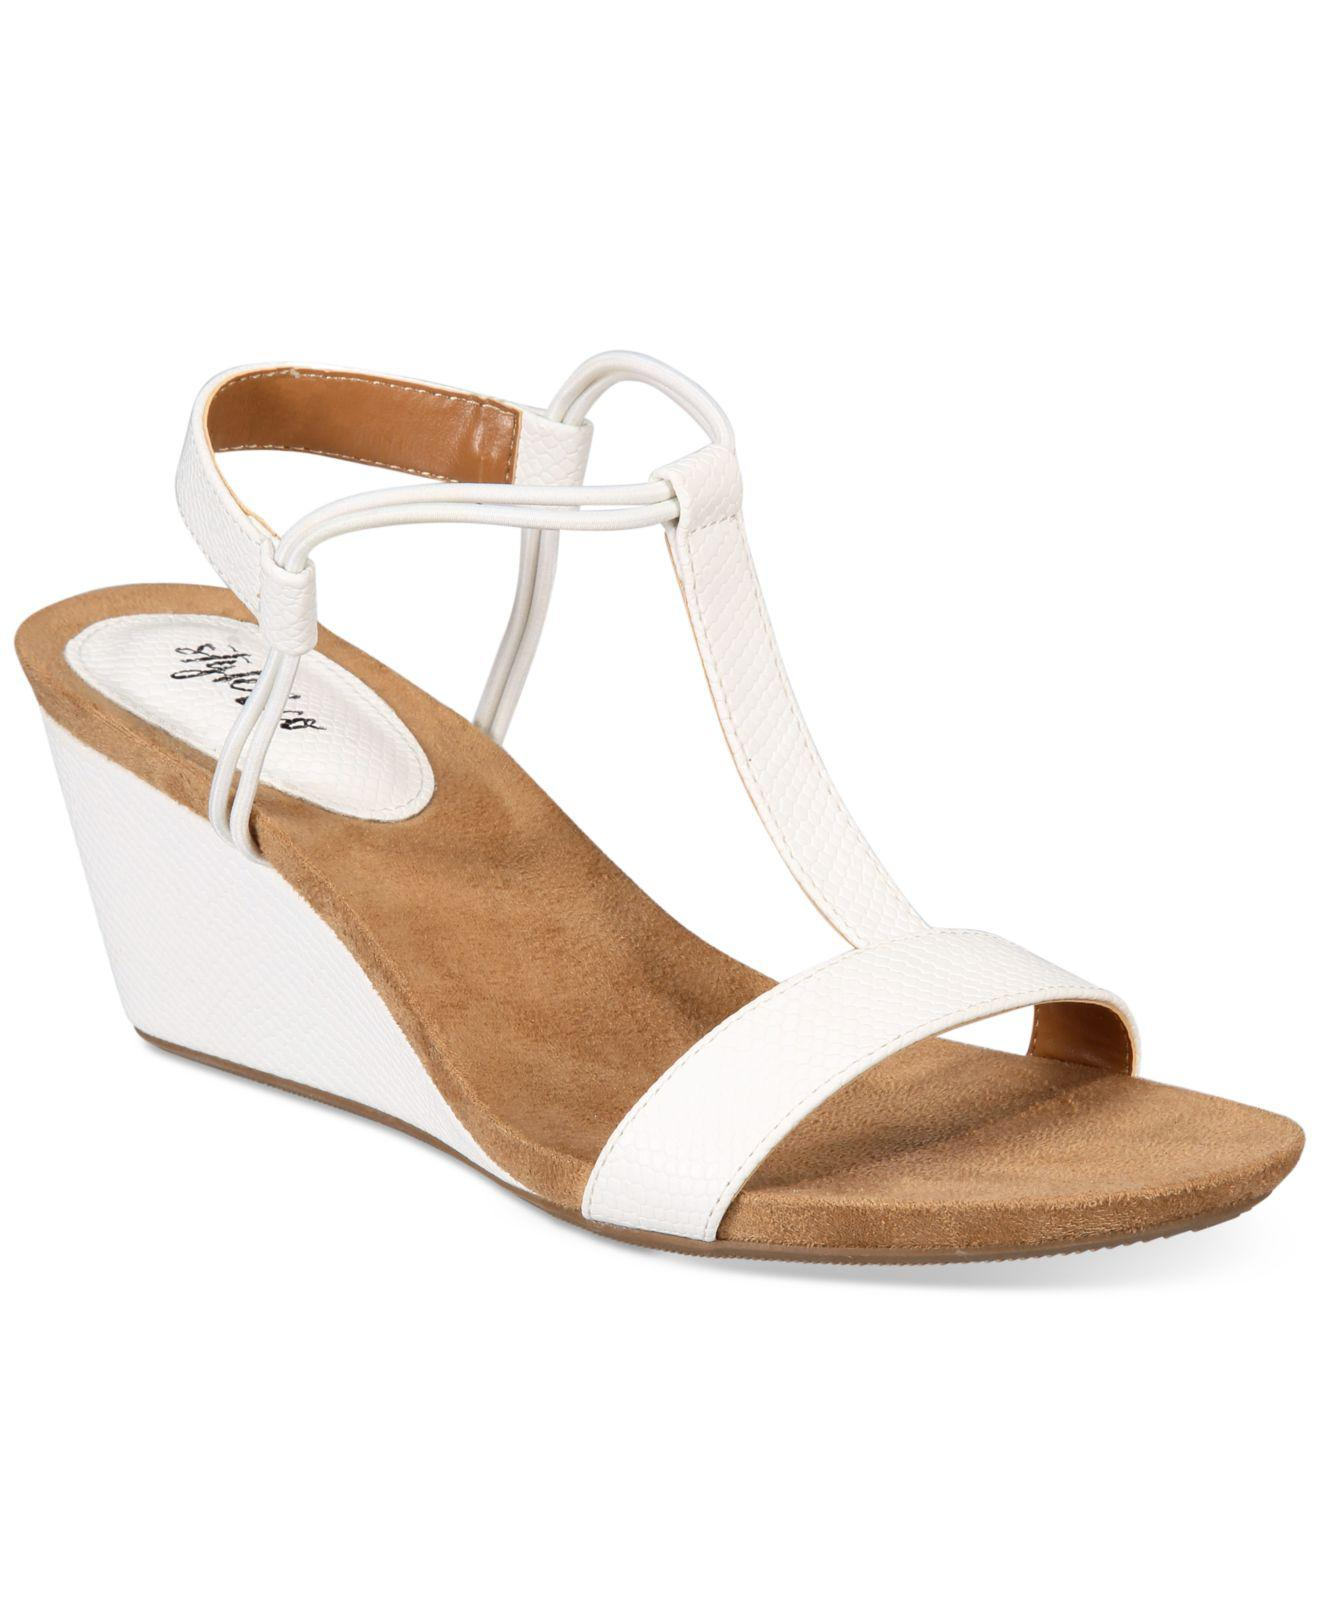 67de0877dc194 Lyst - Style   Co. Mulan Wedge Sandals in White - Save 13%